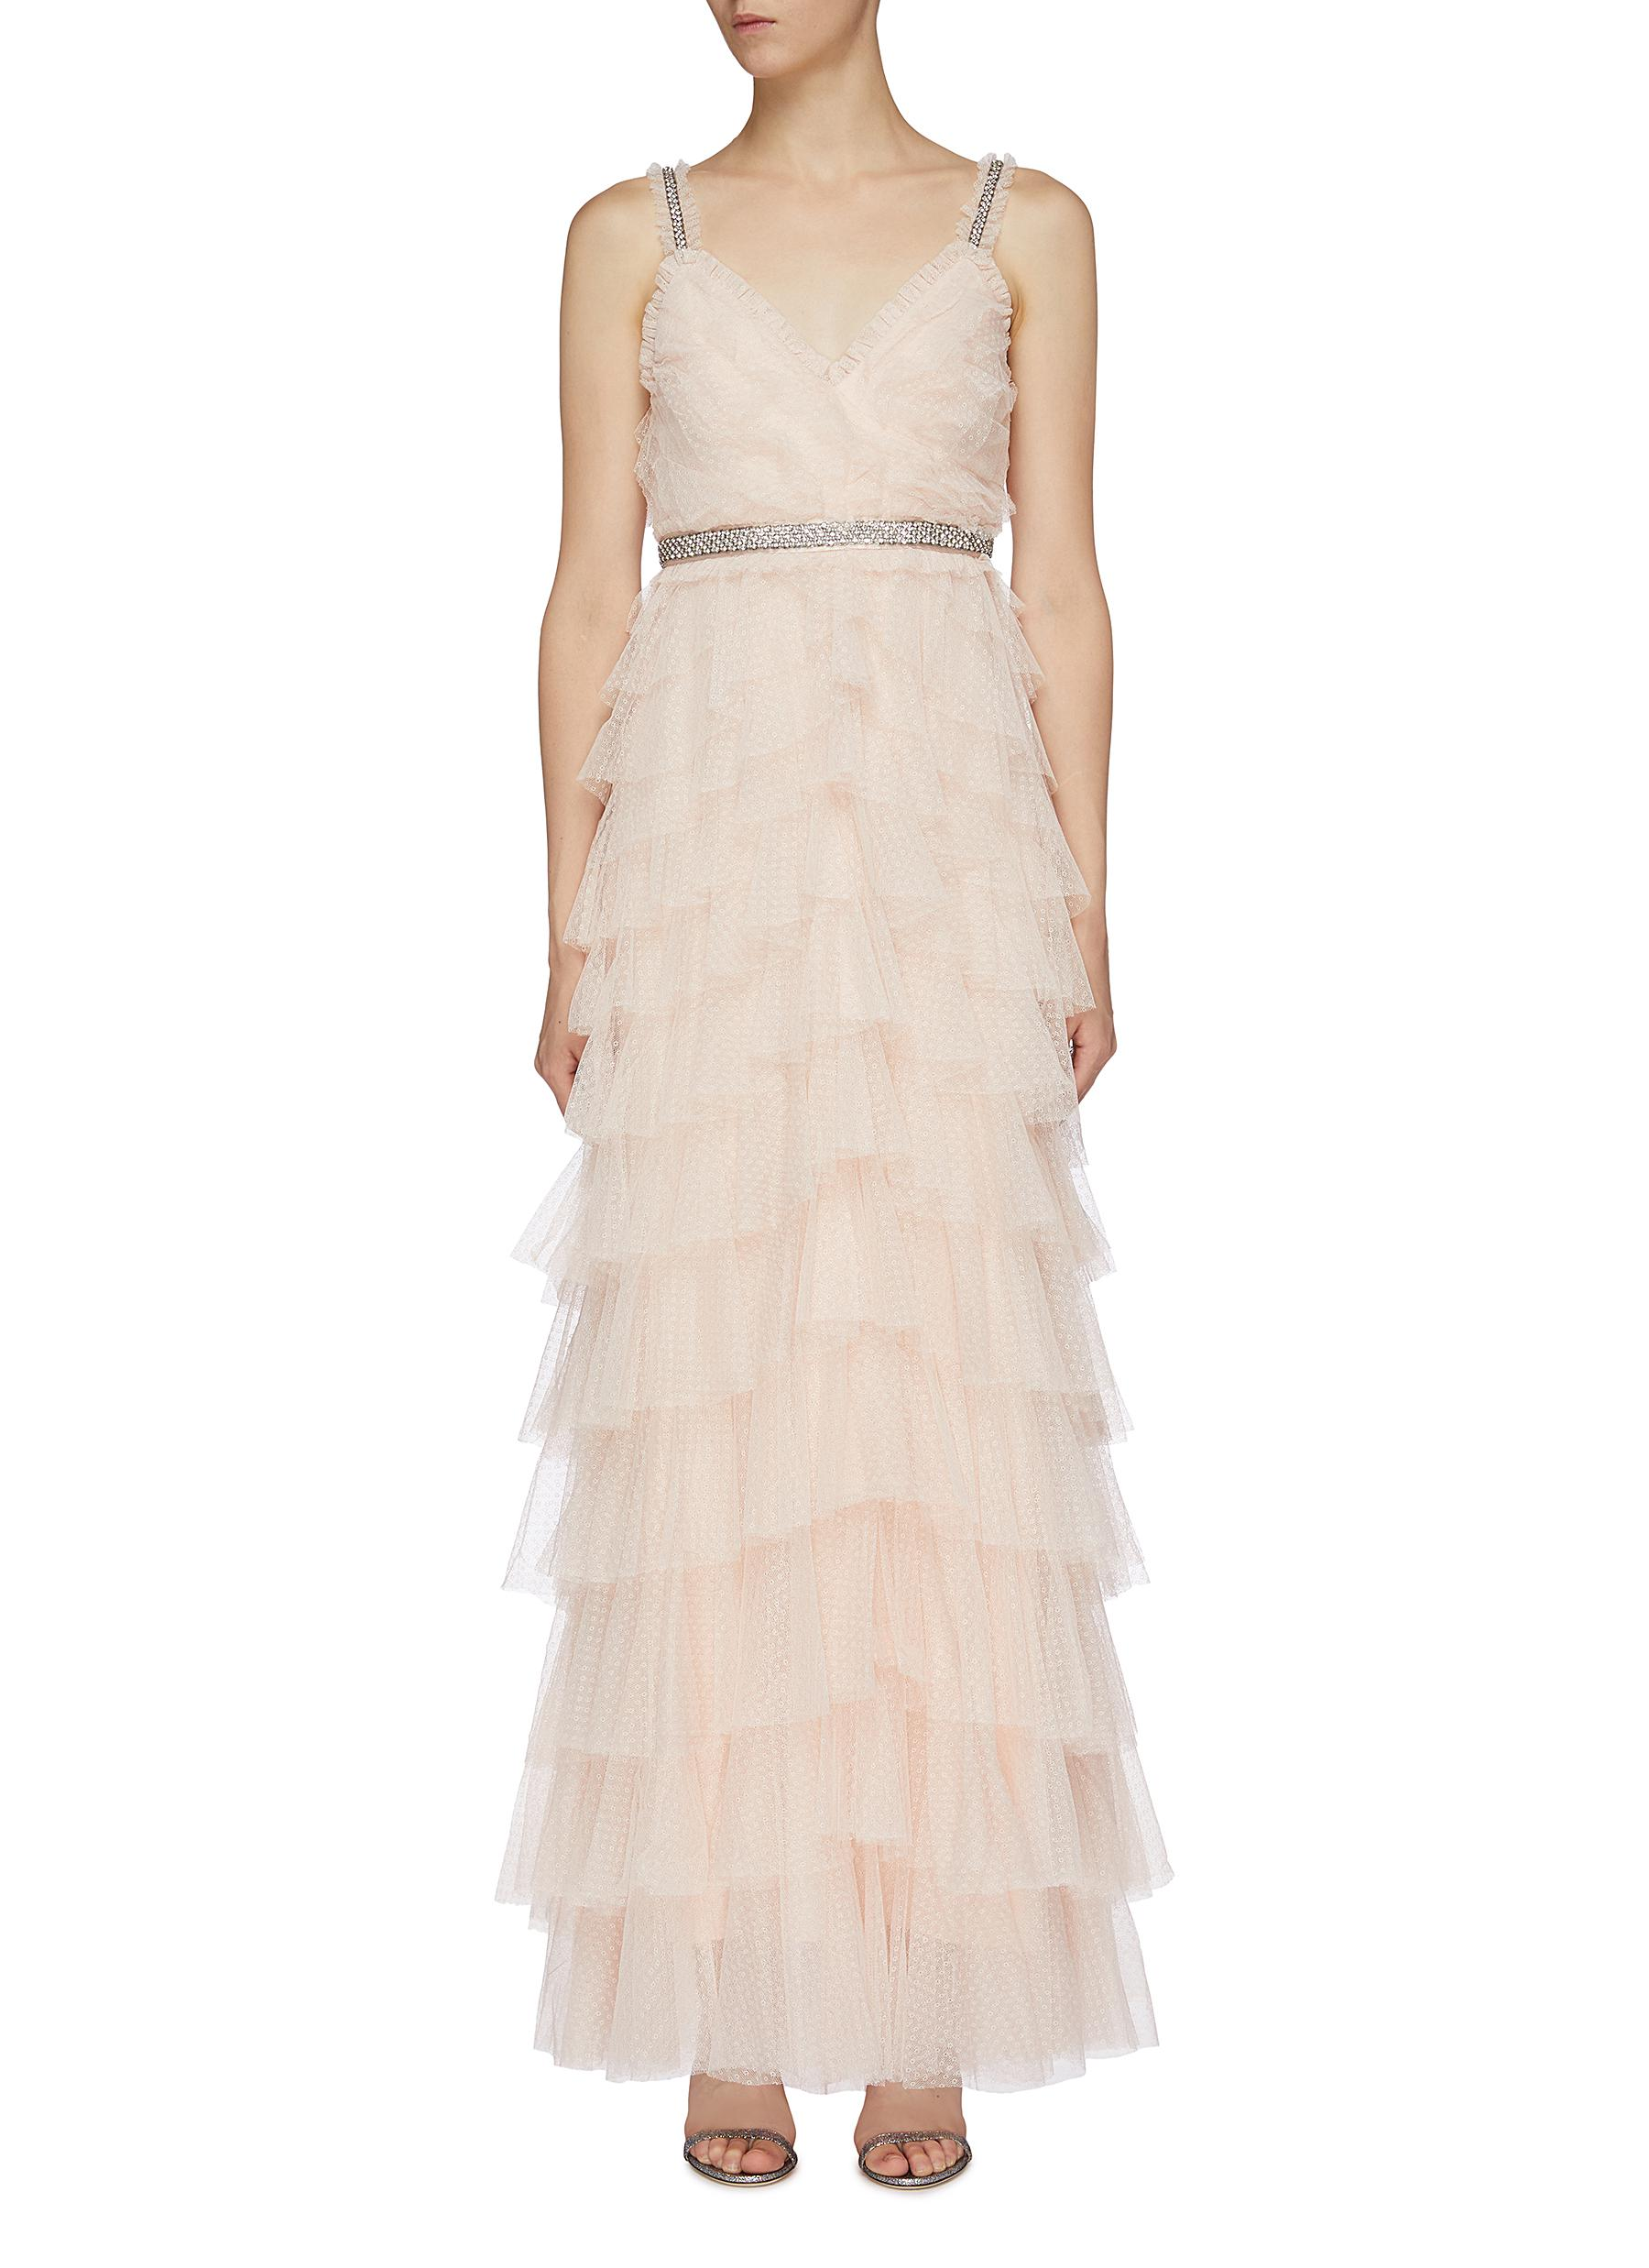 Leilah embellished strap ruffle tiered tulle gown by Needle & Thread